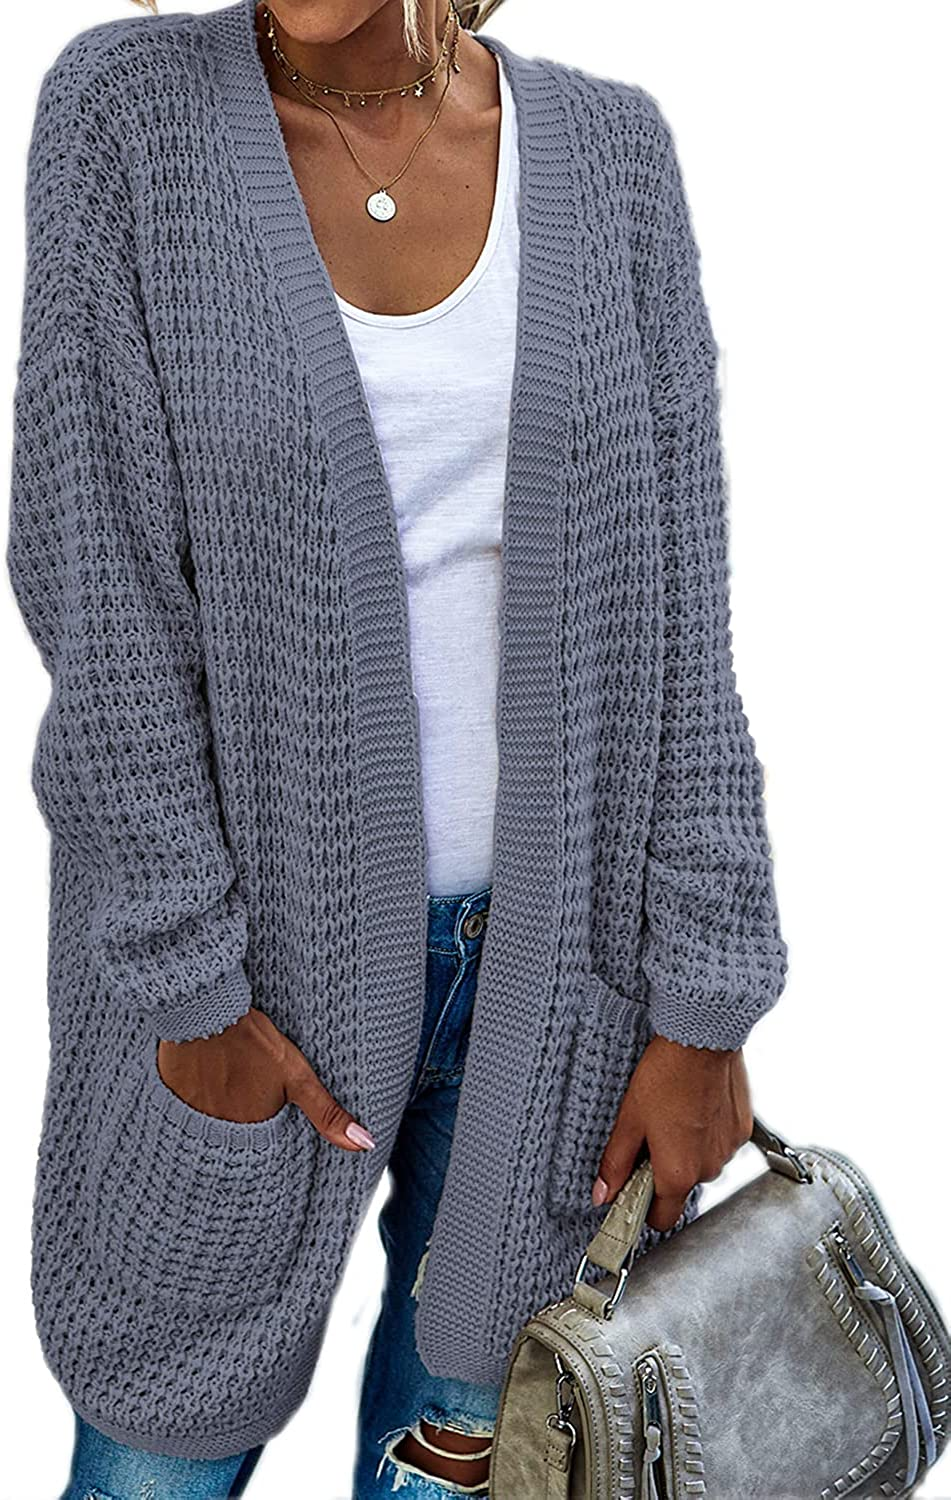 GIGILAUGH Women's Open Front Cardigan Long Batwing Sleeve Outwear Oversized Knit Sweaters with Pockets